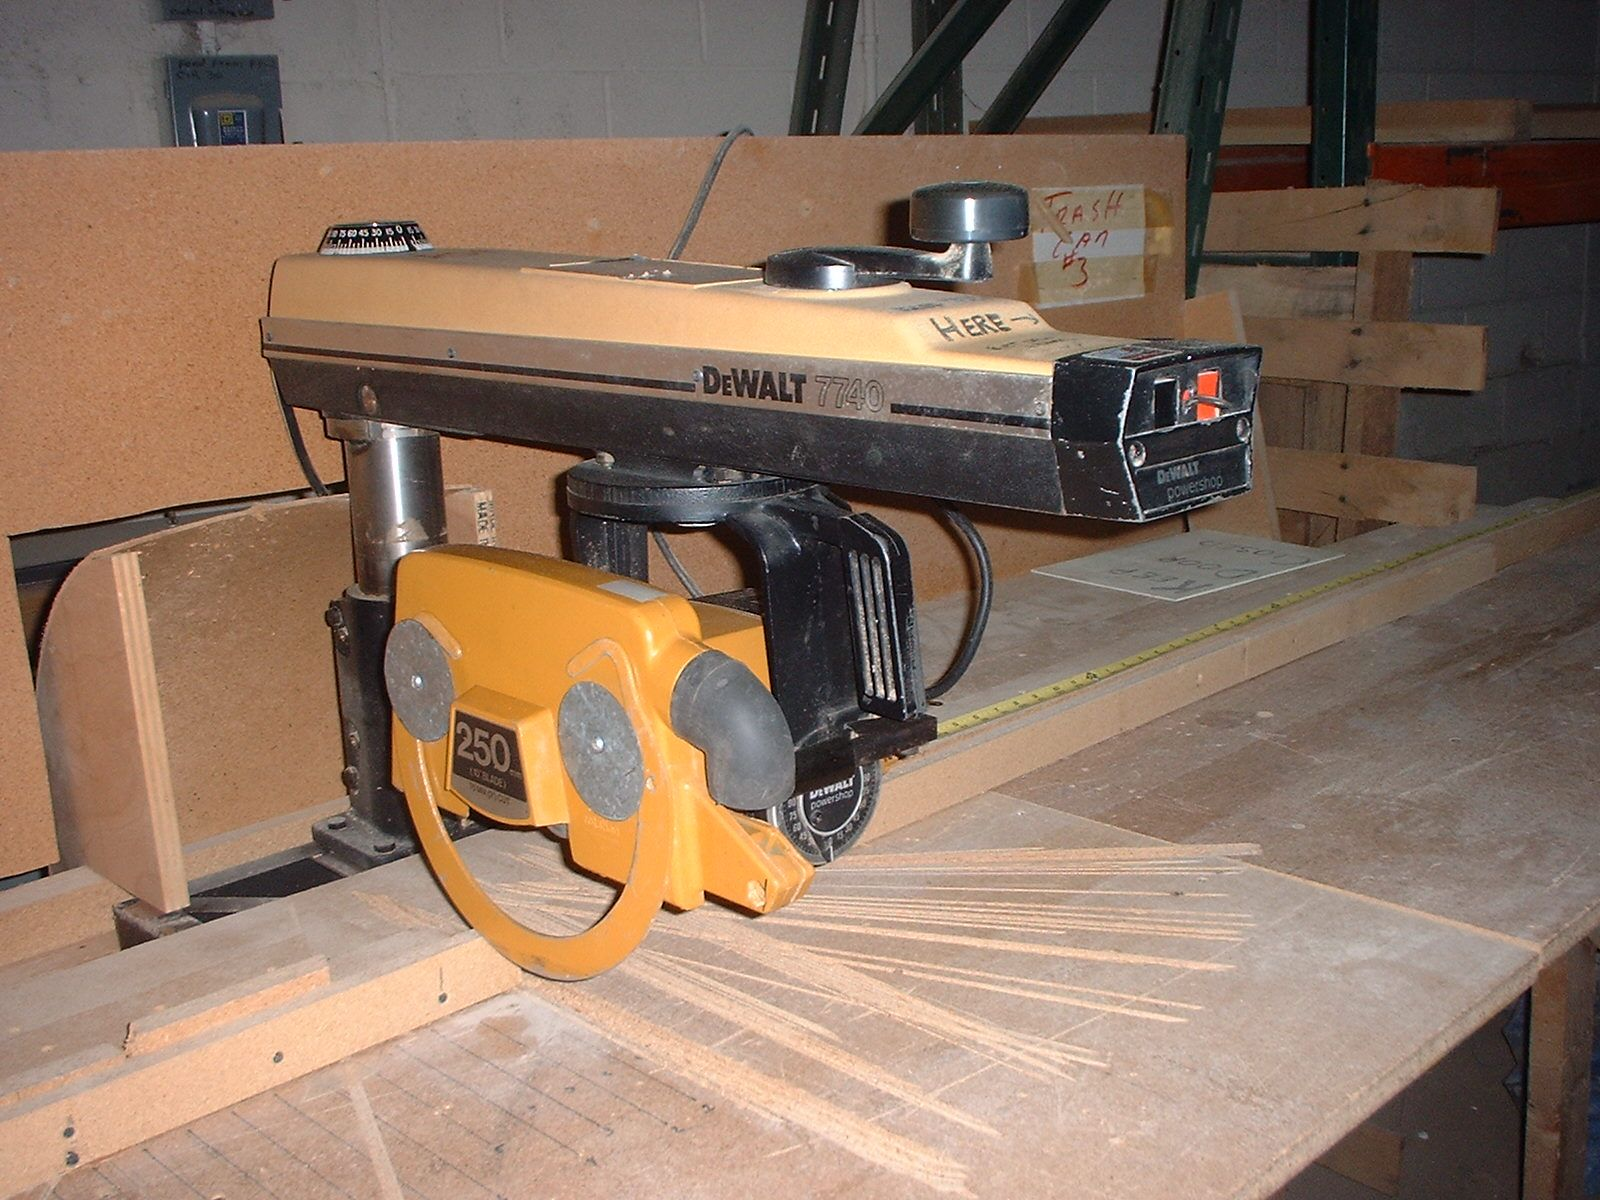 Dust Collector Radial Arm Saws Buscar Con Google Radial Arm Saw Saws Miter Saw